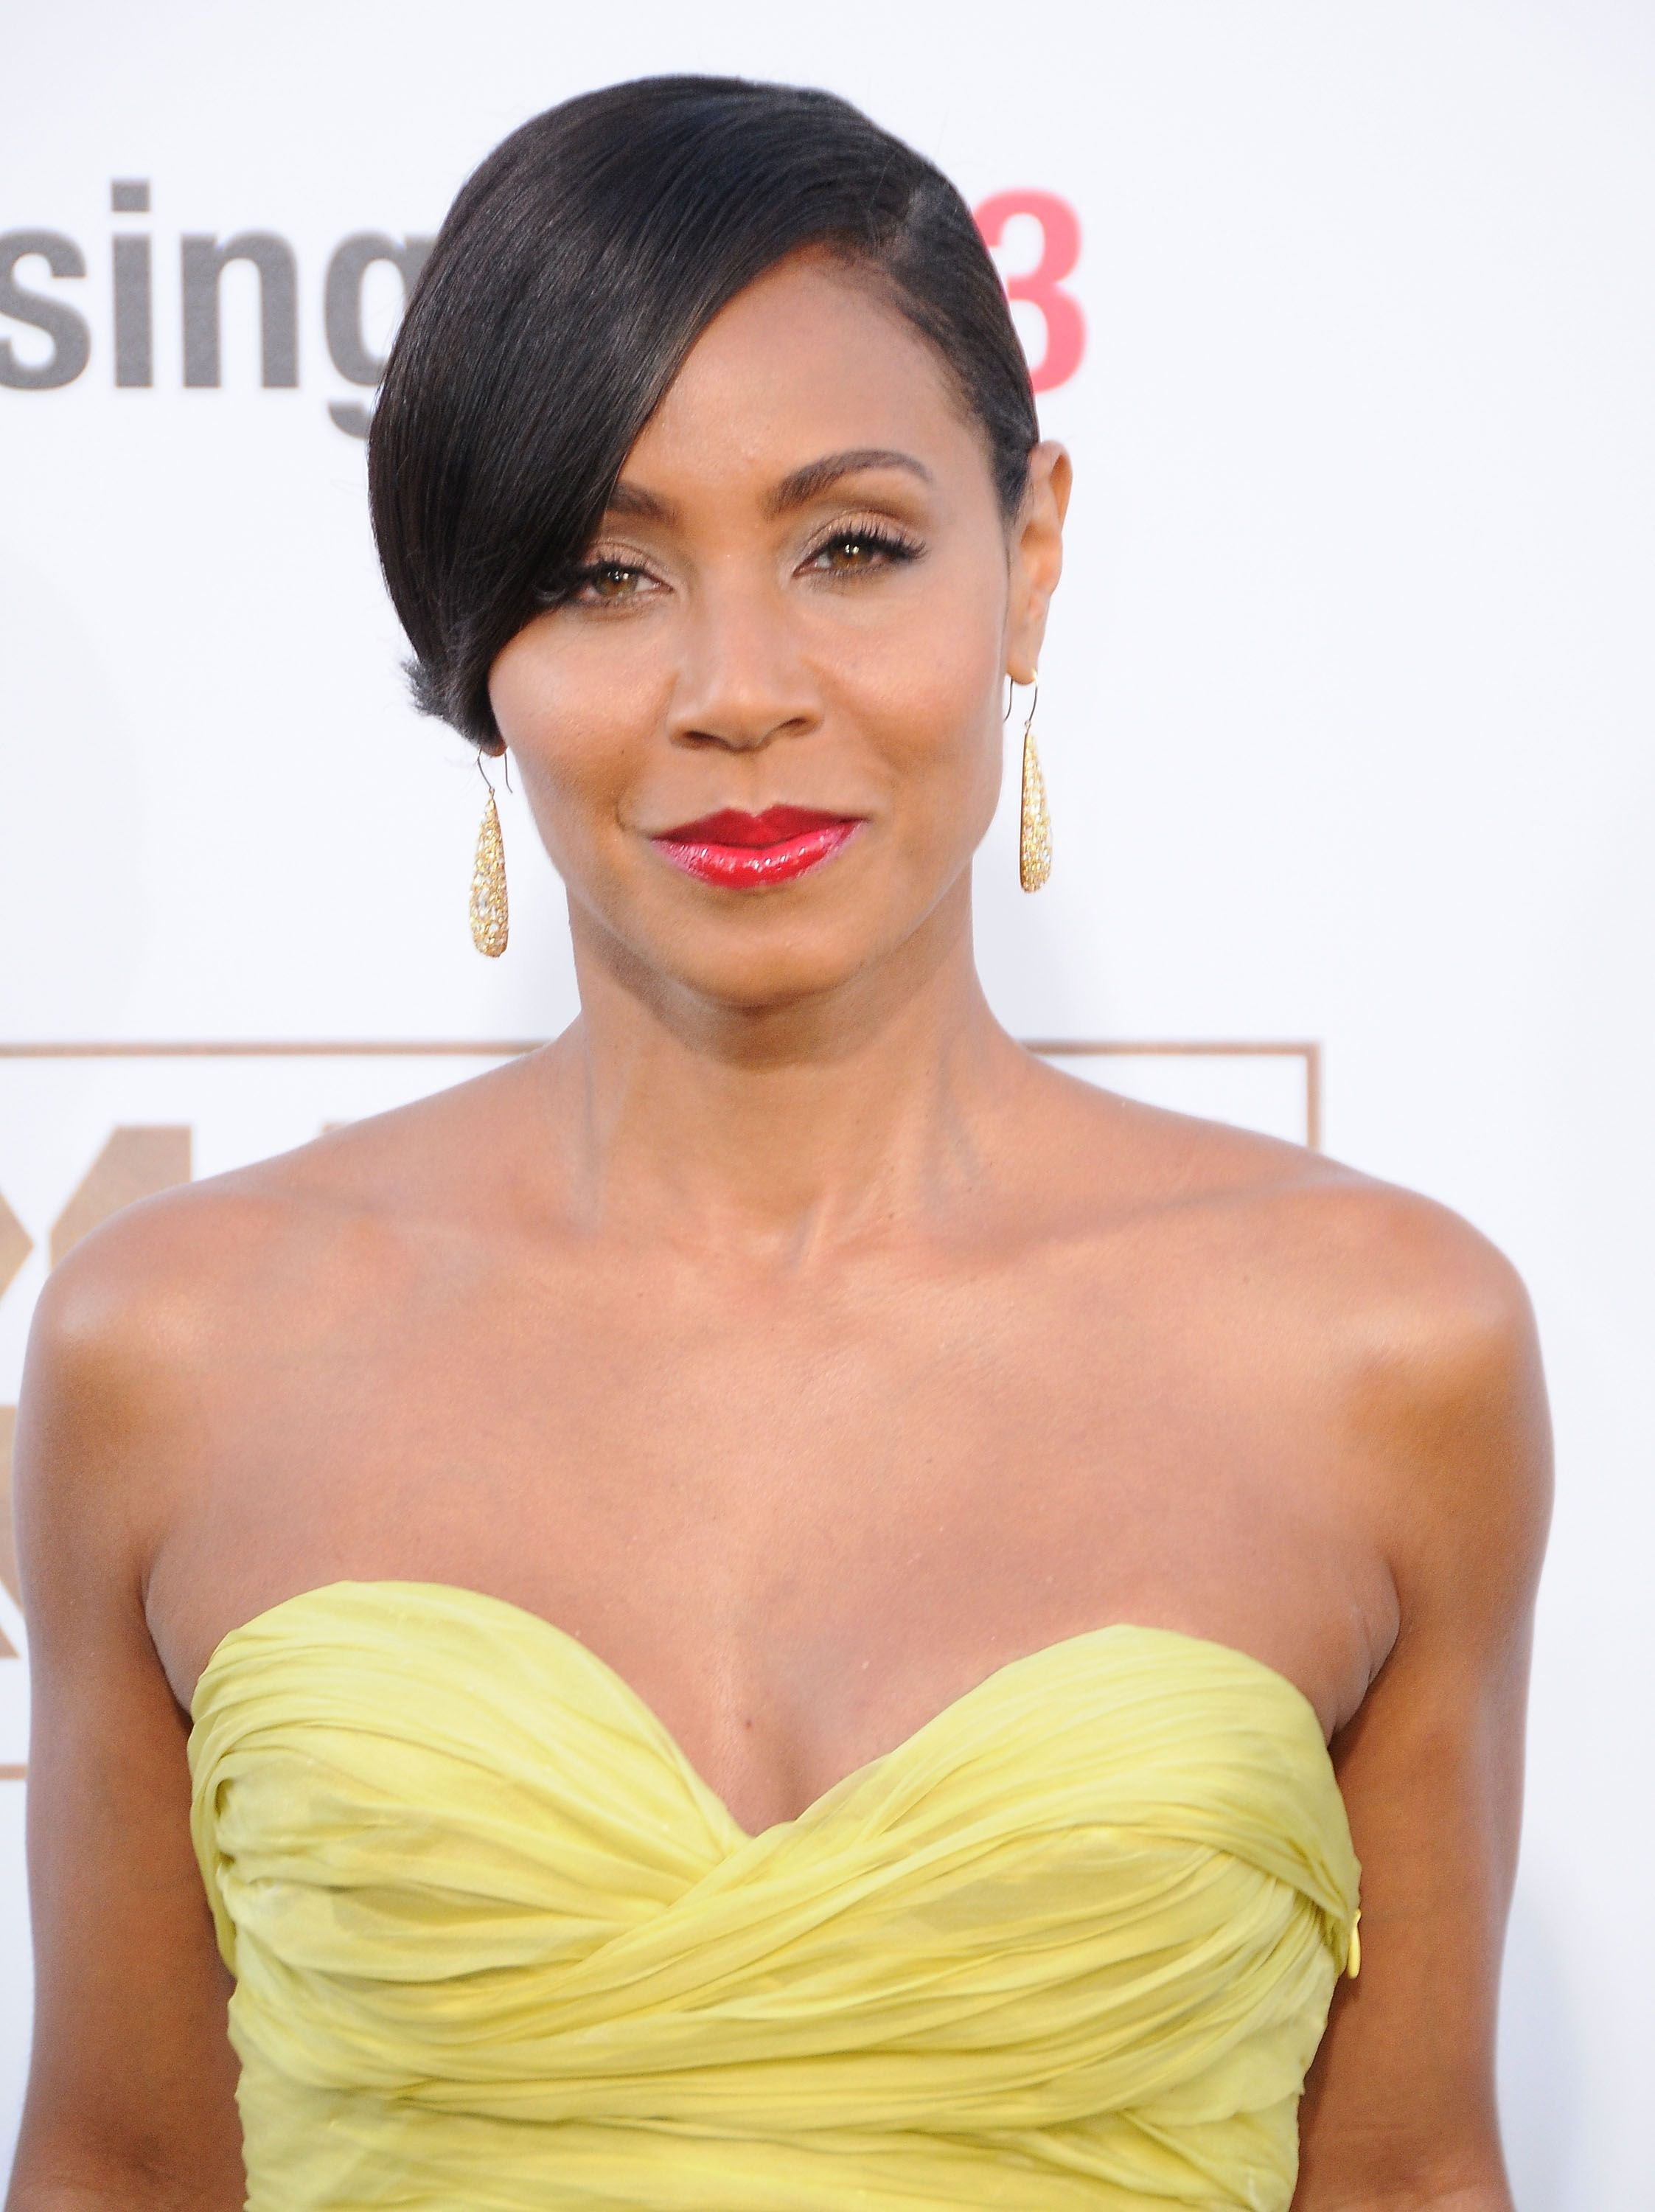 Jada Pinkett Smith arriving at the LAWorld Premiere of Warner Bros. Pictures 'Magic Mike XXL' on June 25, 2015 in Hollywood. | Photo: Getty Images